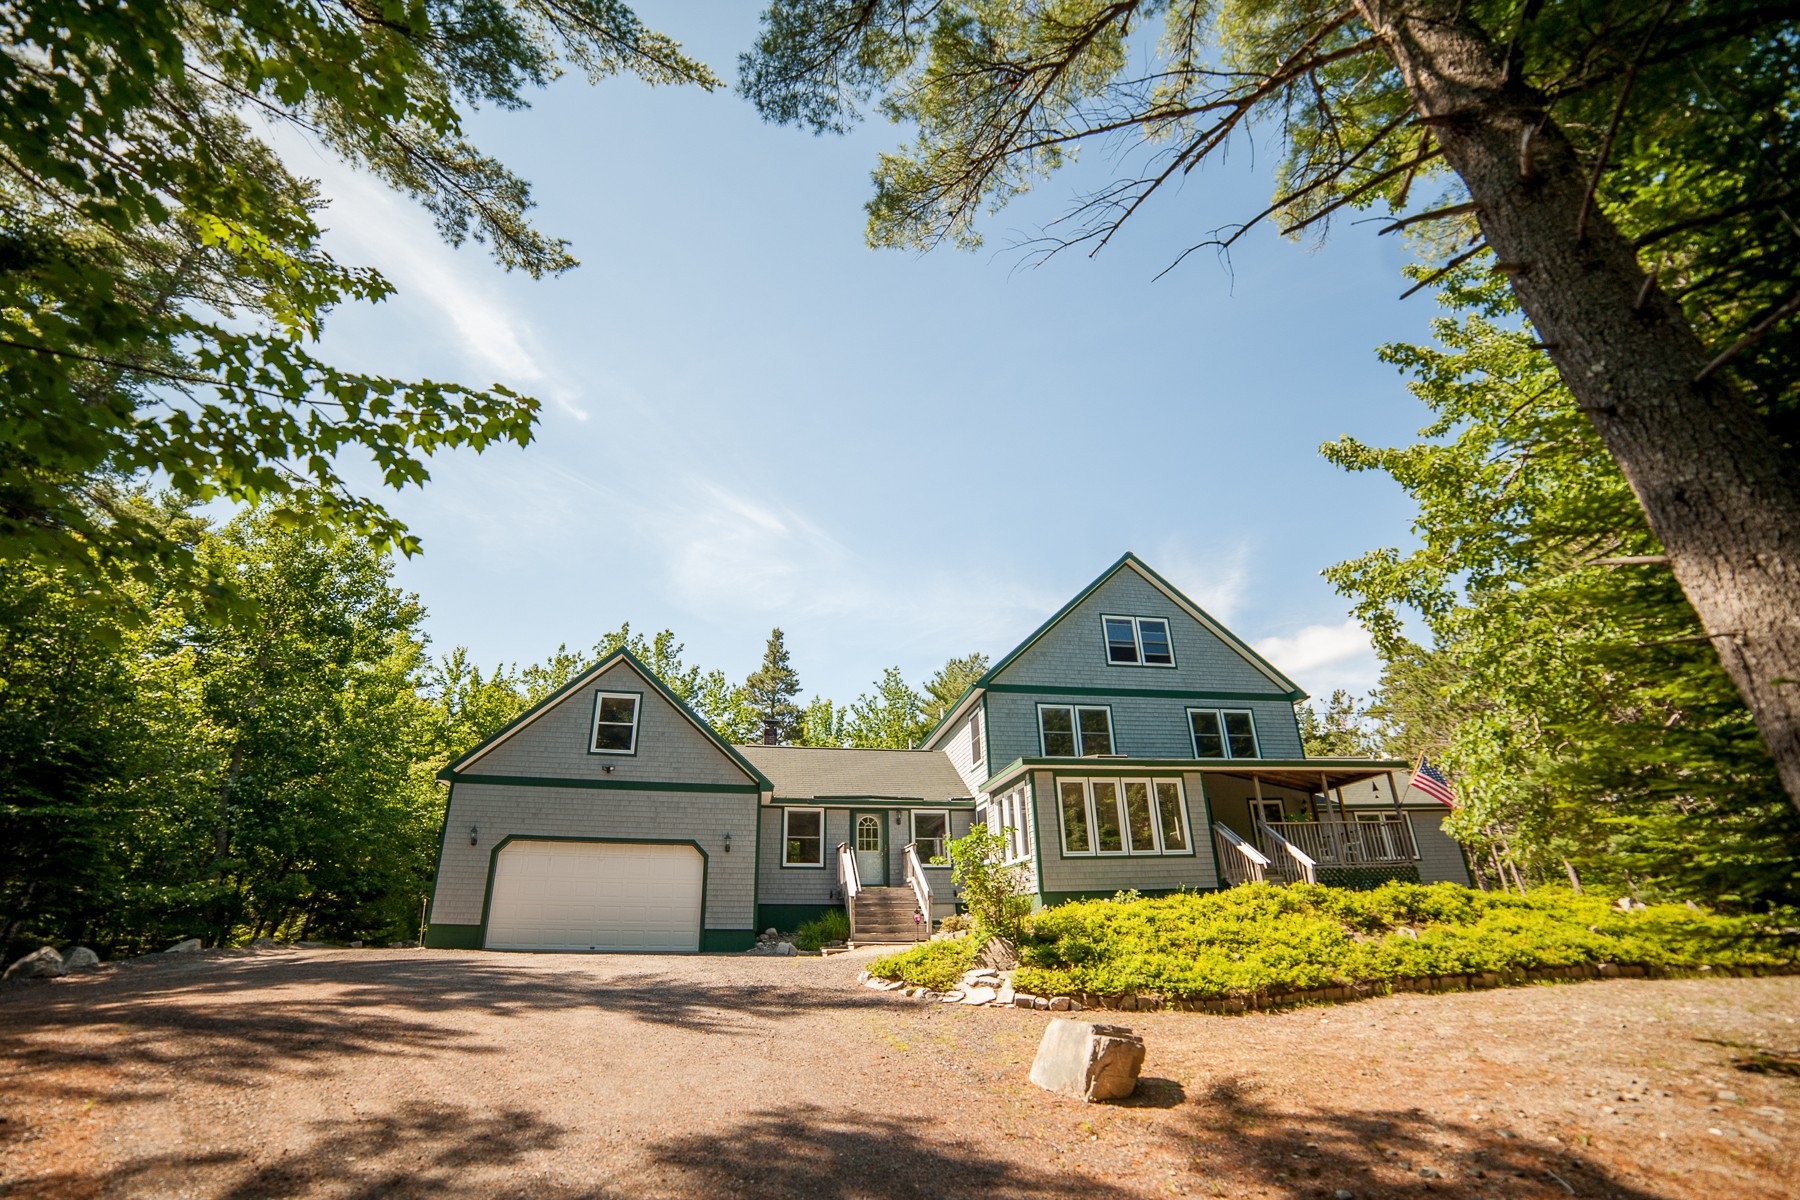 Single Family Home for Sale at Macomber Pines Road 25 Macomber Pines Road Mount Desert, Maine 04660 United States